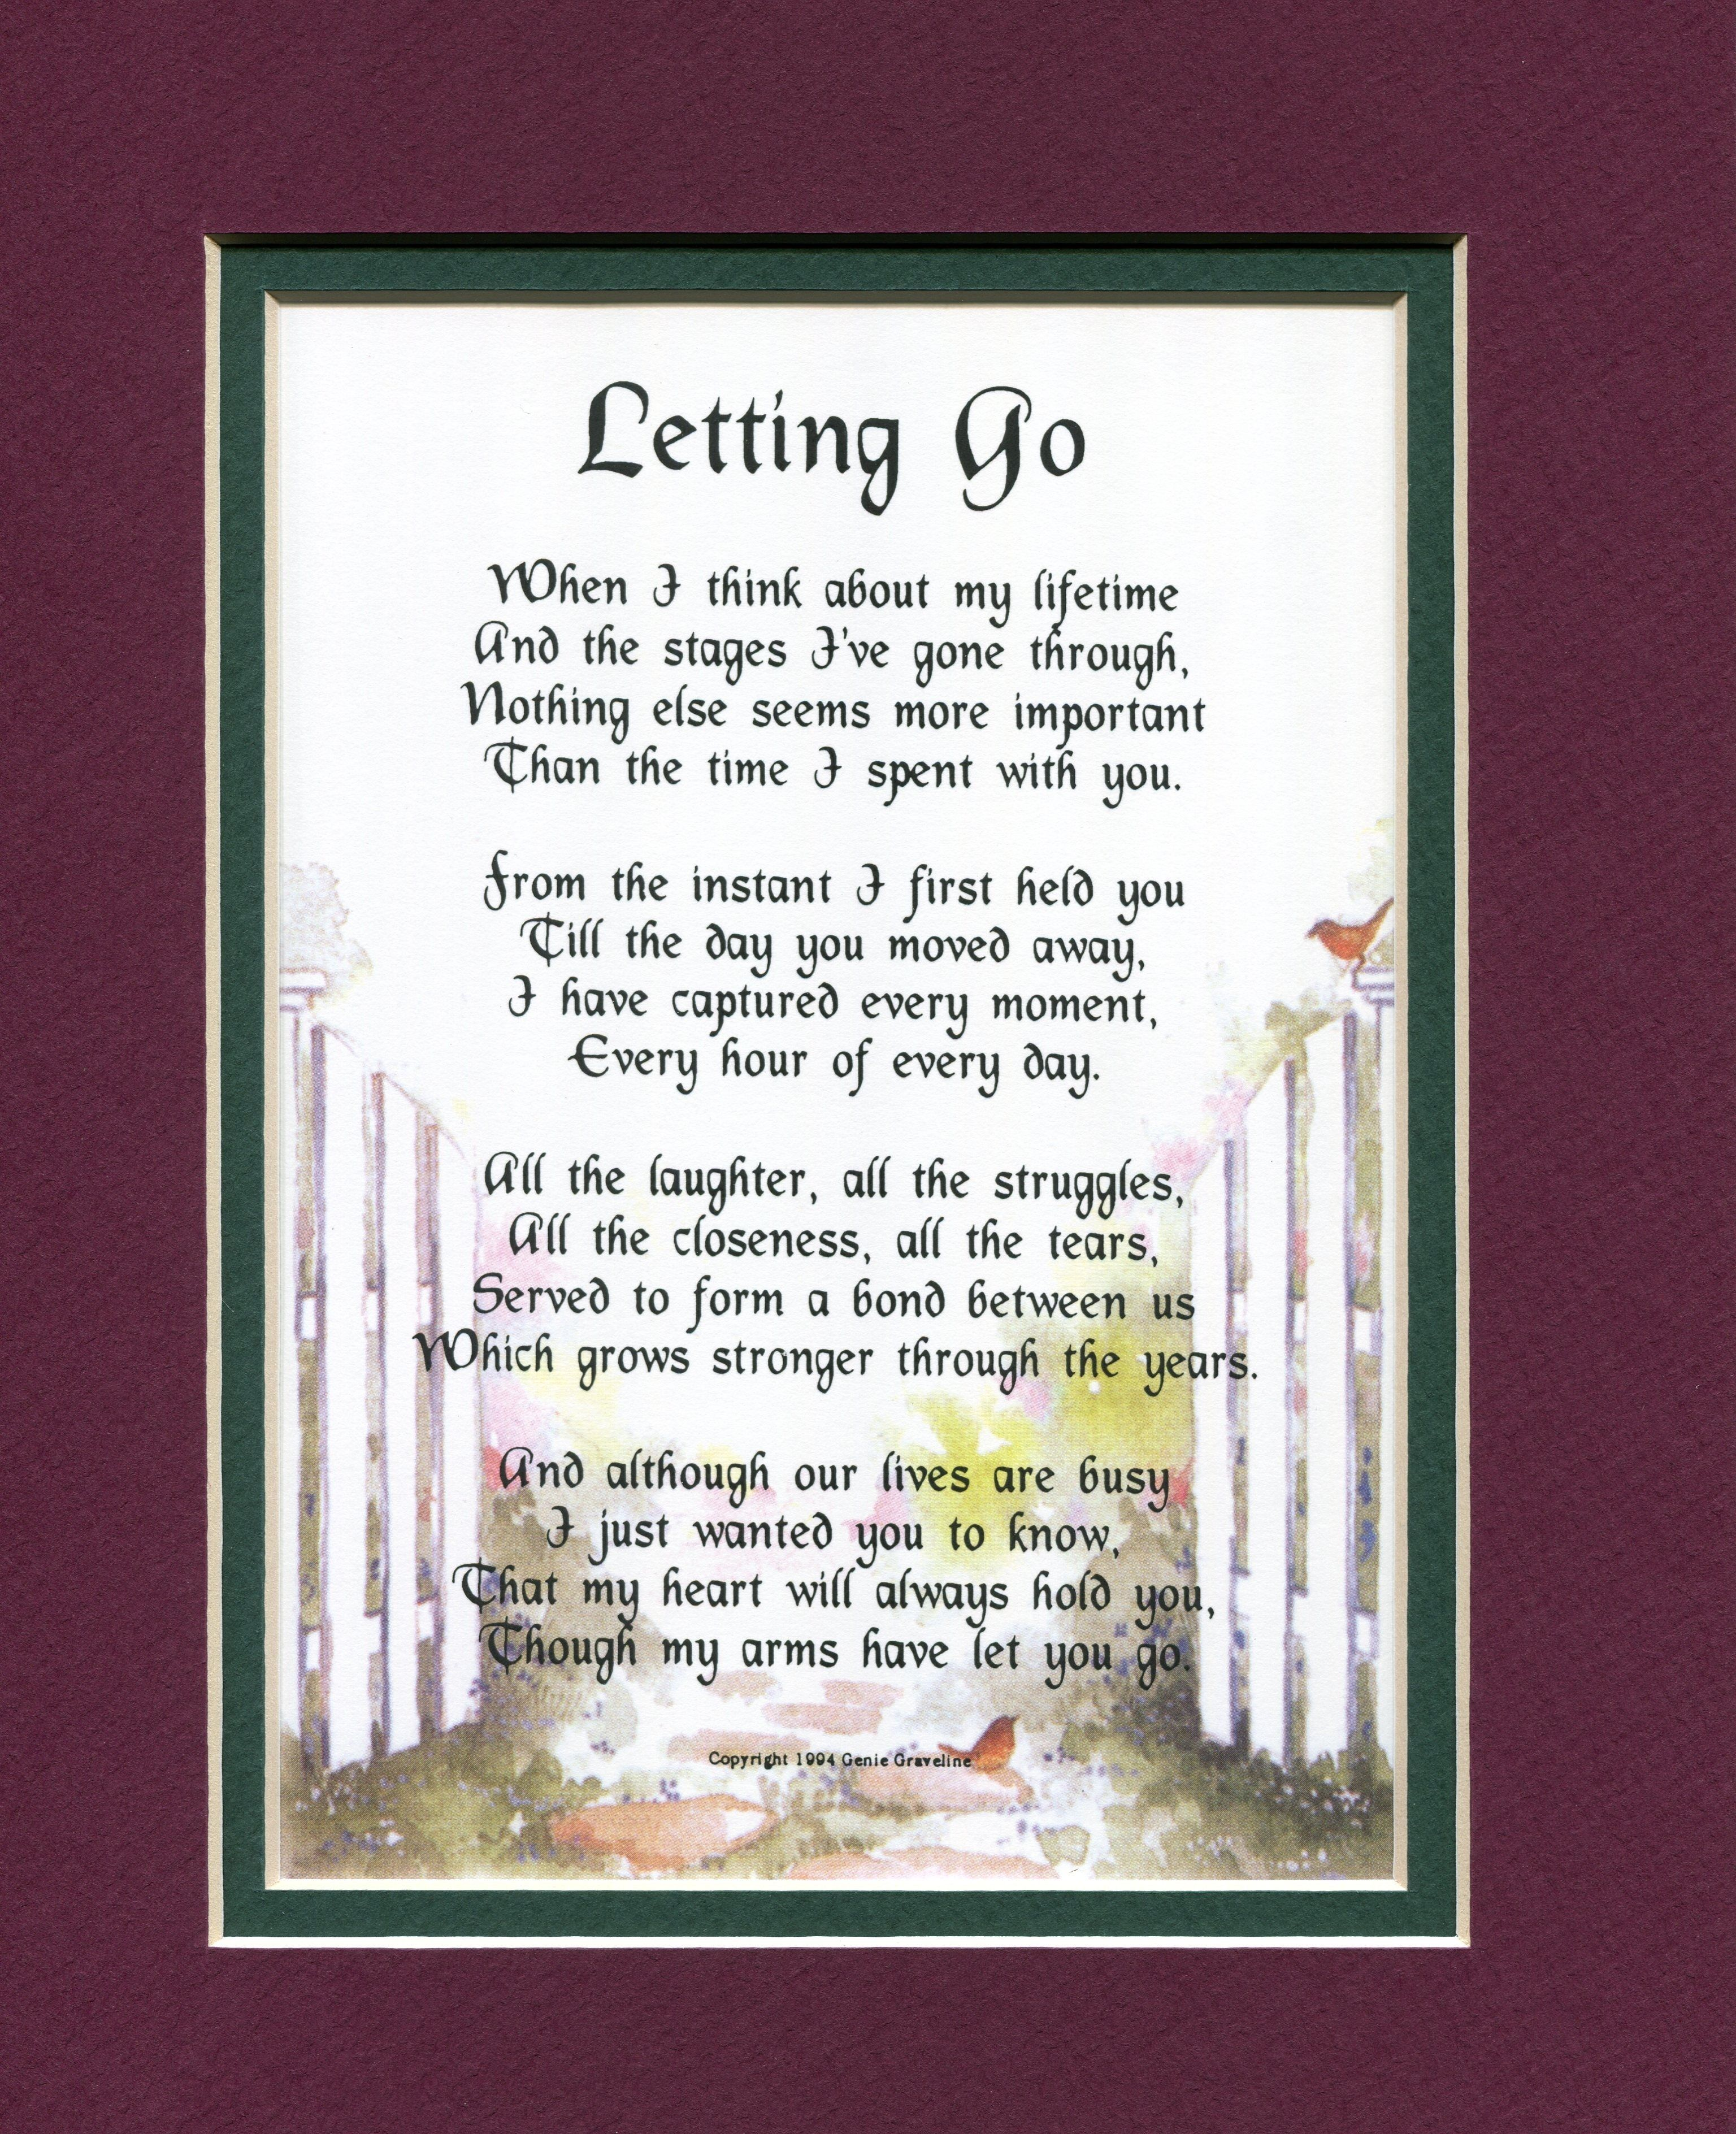 letting go son poems daughter poems birthday poems for daughter gift baskets for